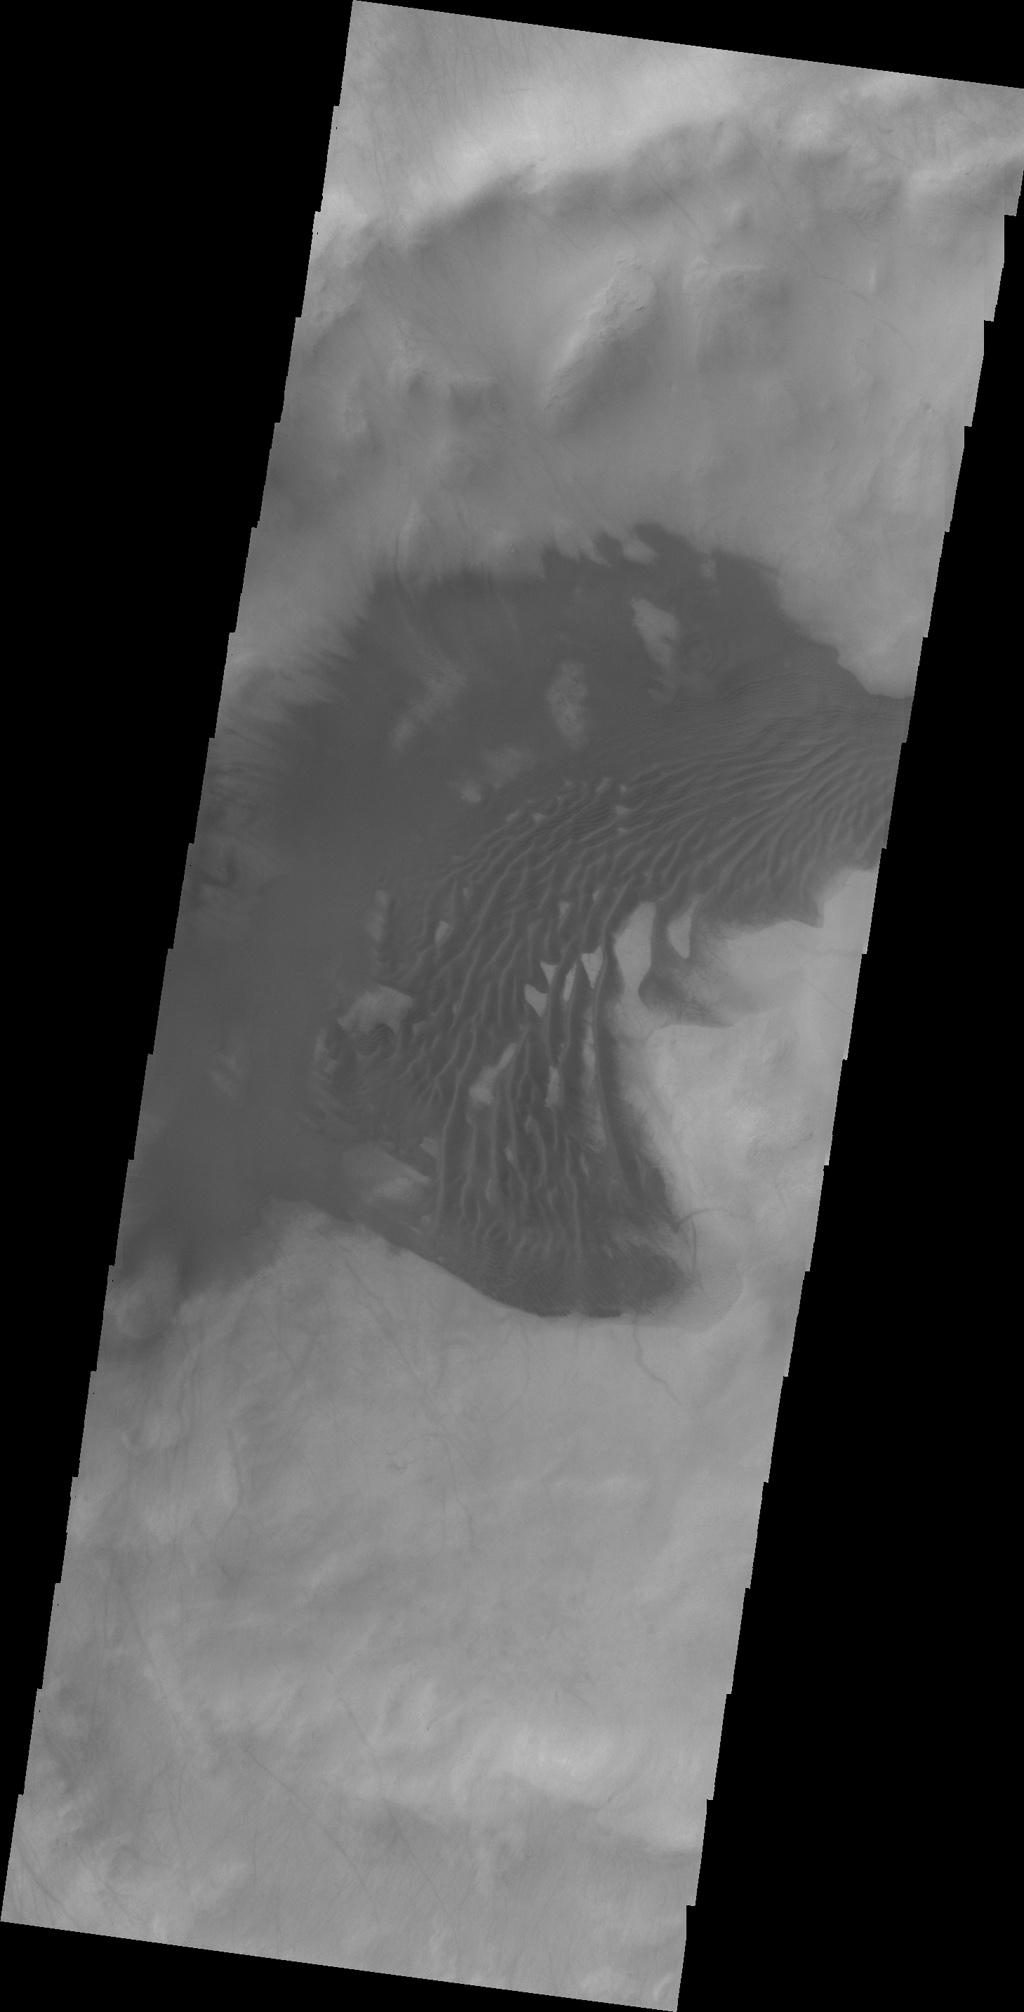 The dunes in this image captured by NASA's 2001 Mars Odyssey spacecraft are located in an unnamed crater in Sisyphi Planum.